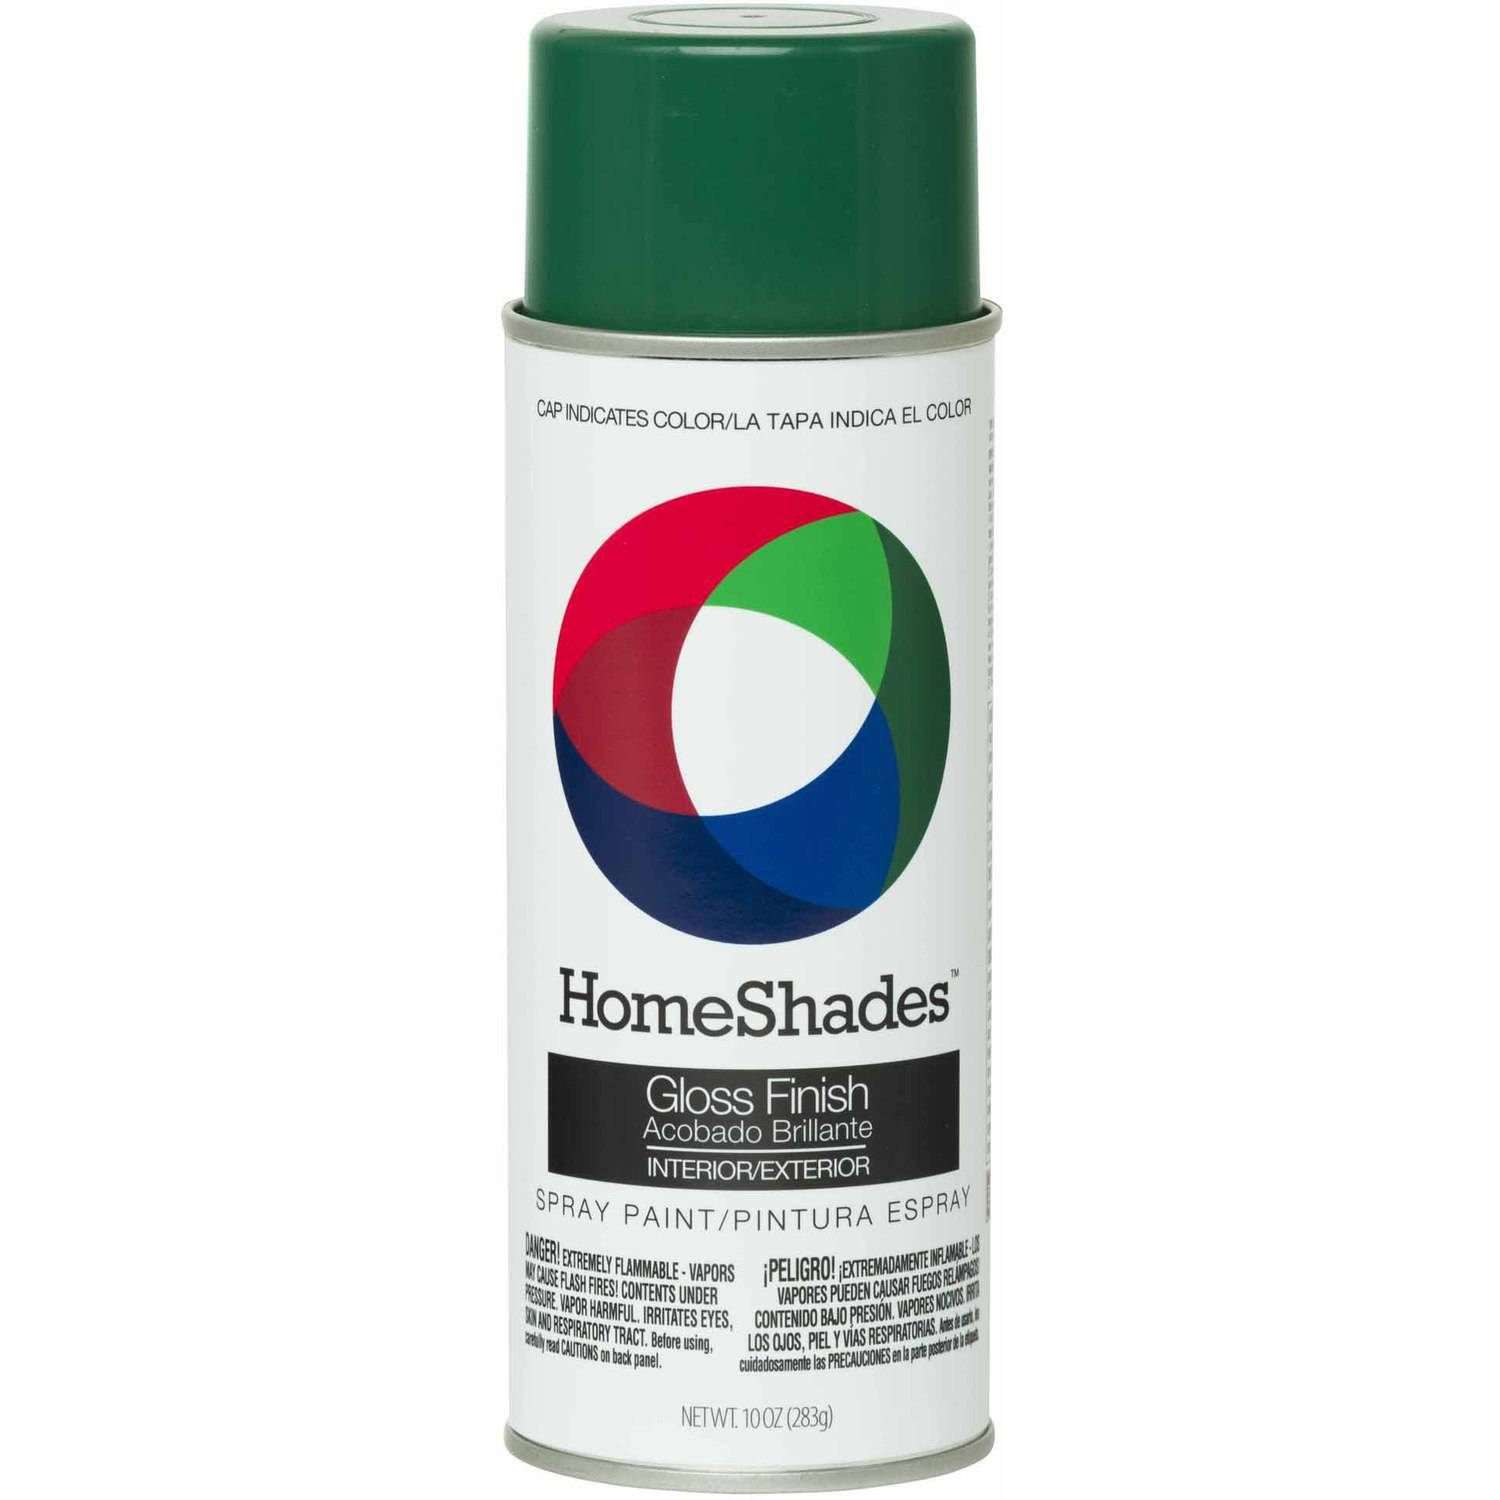 (3 Pack) HomeShades Spray Paint, Gloss Kelly Green